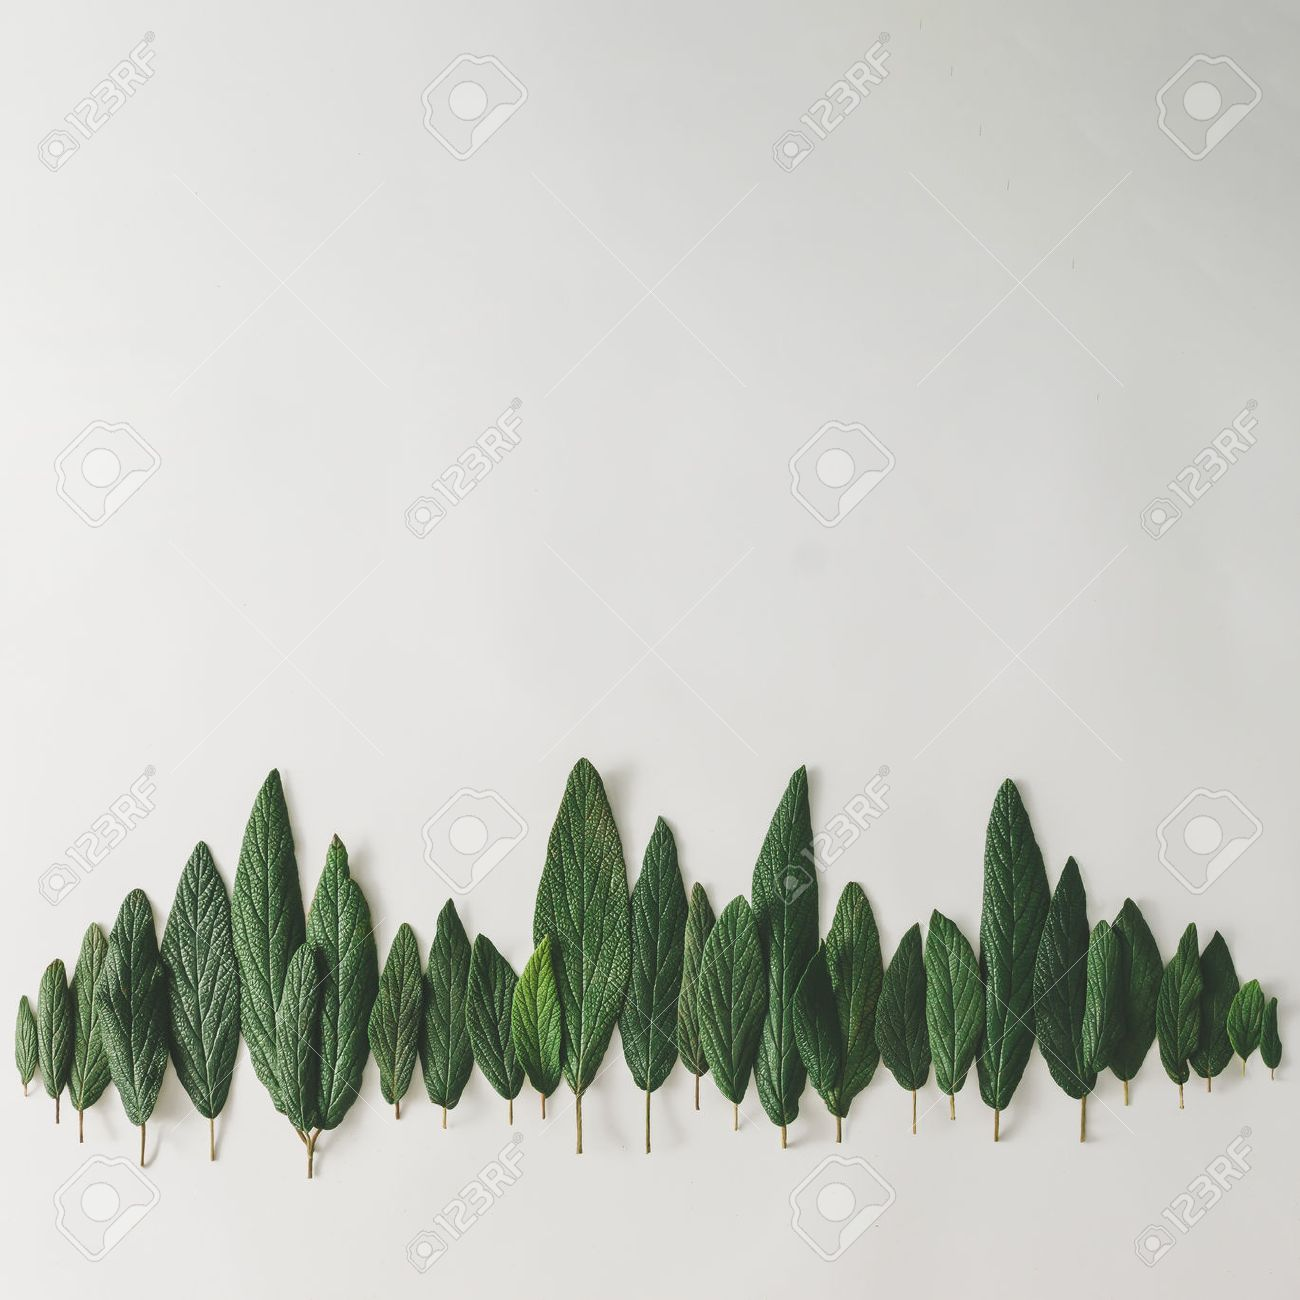 Forest treeline made of green leaves on bright background. Minimal nature concept. Flat lay. - 76154391